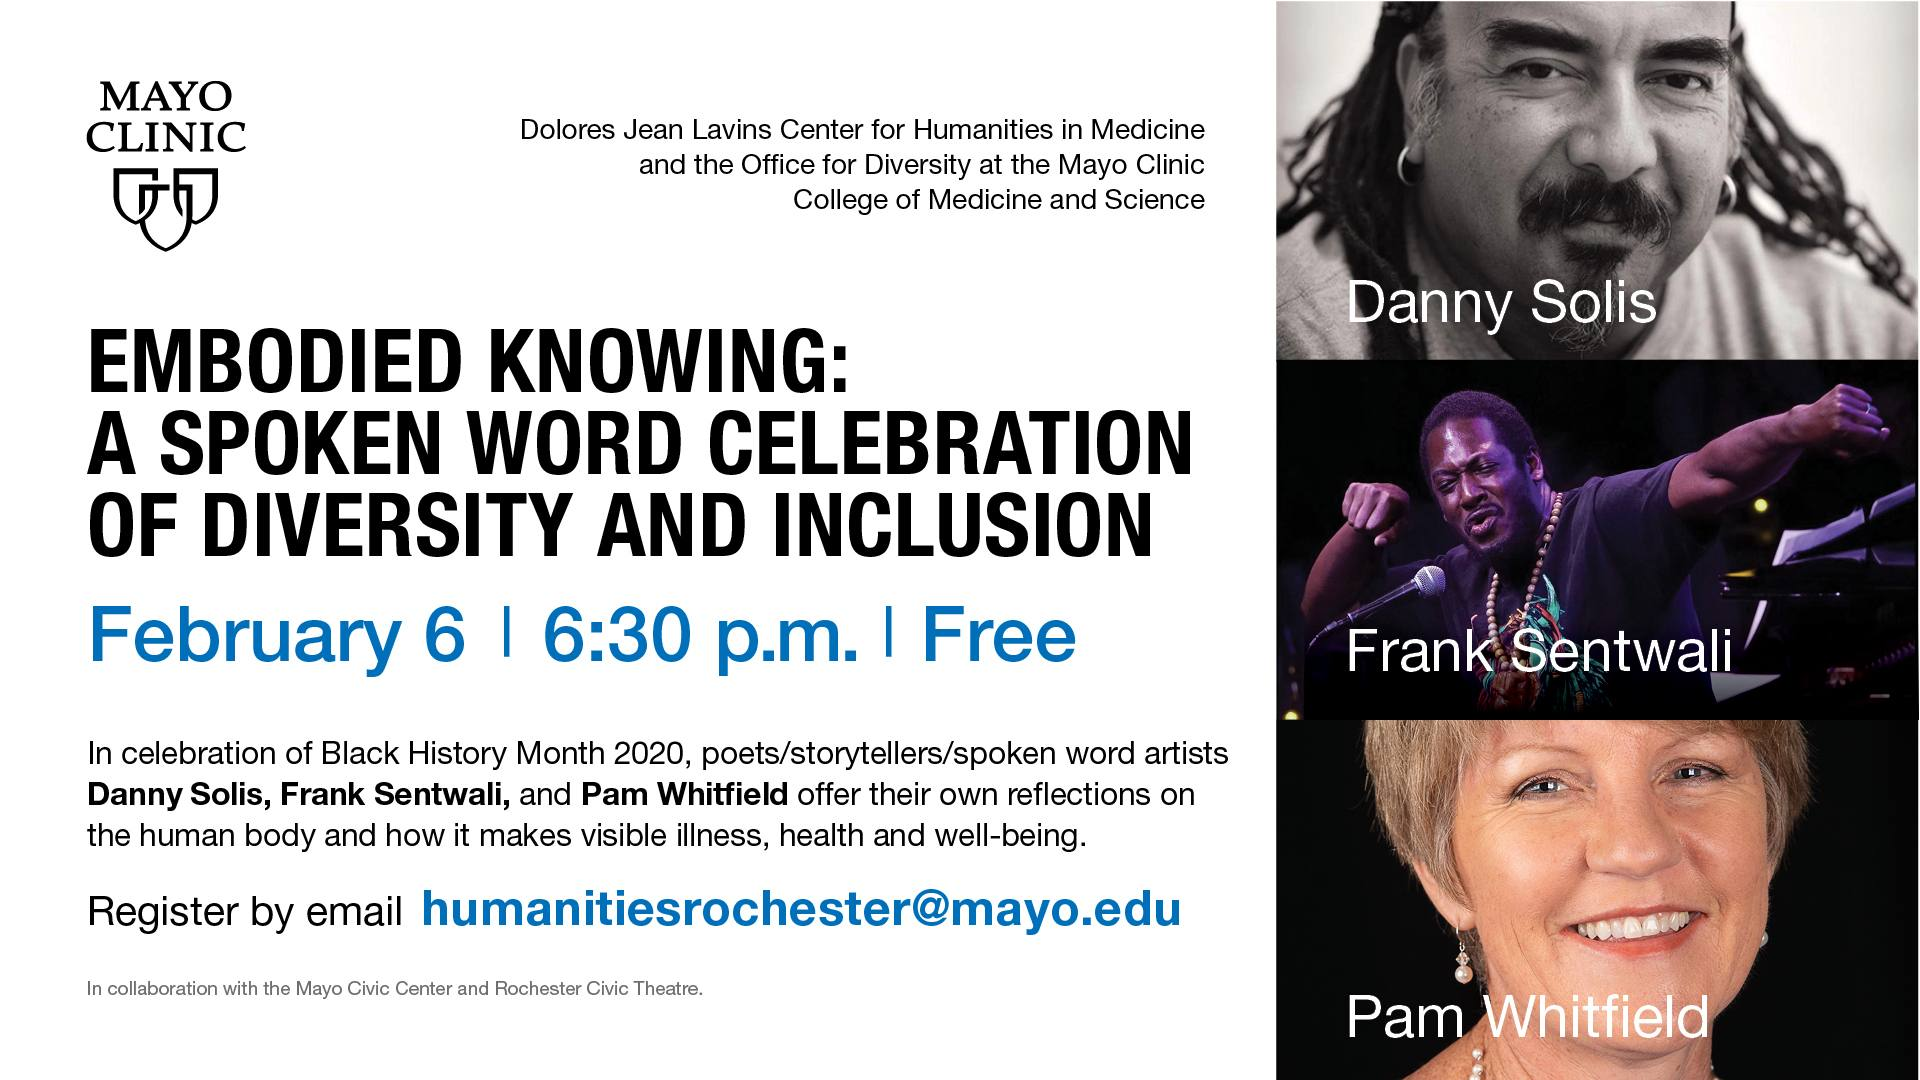 Embodied Knowing: A Spoken Word Celebration of Diversity and Inclusion